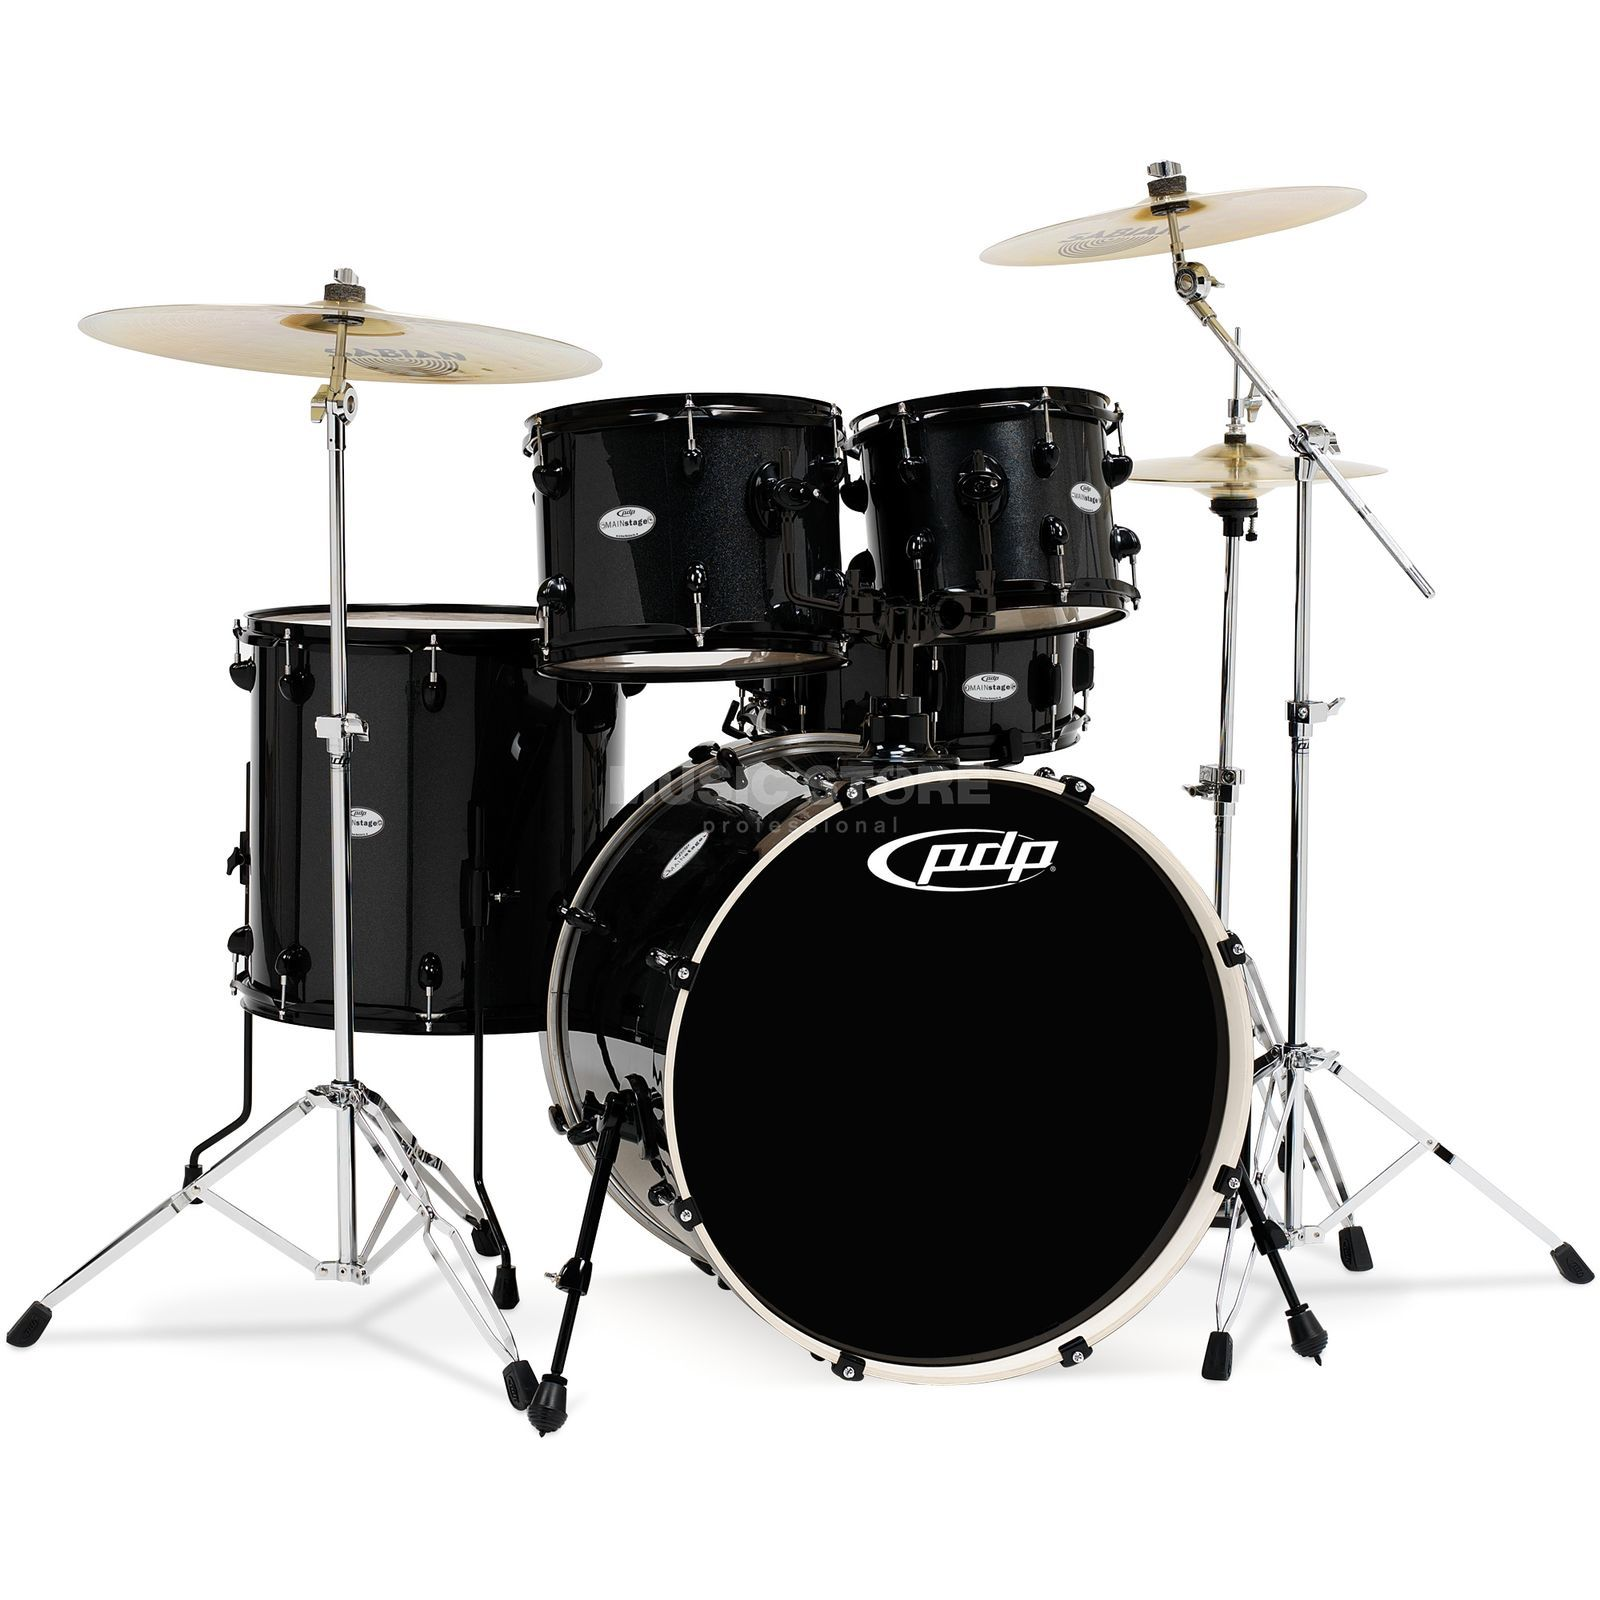 Drum Workshop PDP Mainstage Rock, Black Metallic, Black HW Produktbild